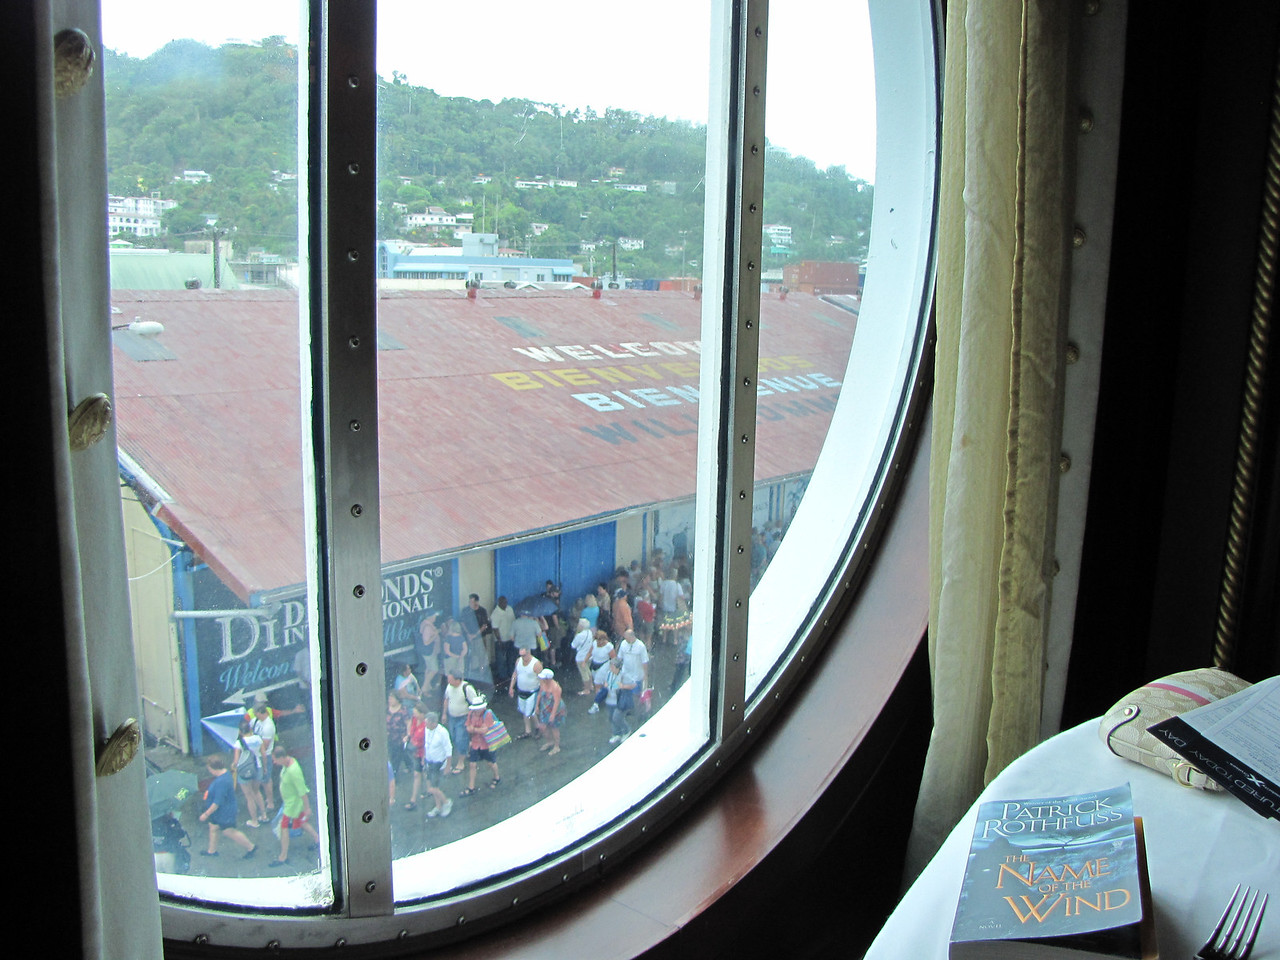 We had a table next to a window where we could watch passengers gathering for their excursions.